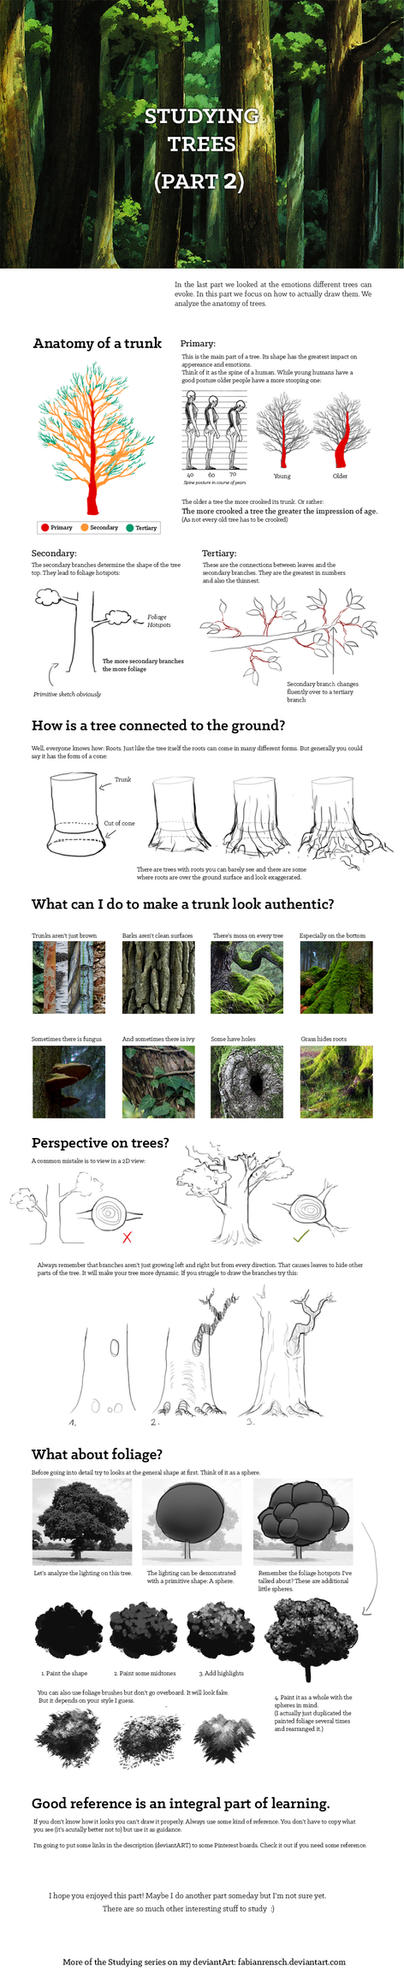 Studying: Trees (pt.2) by fabianrensch